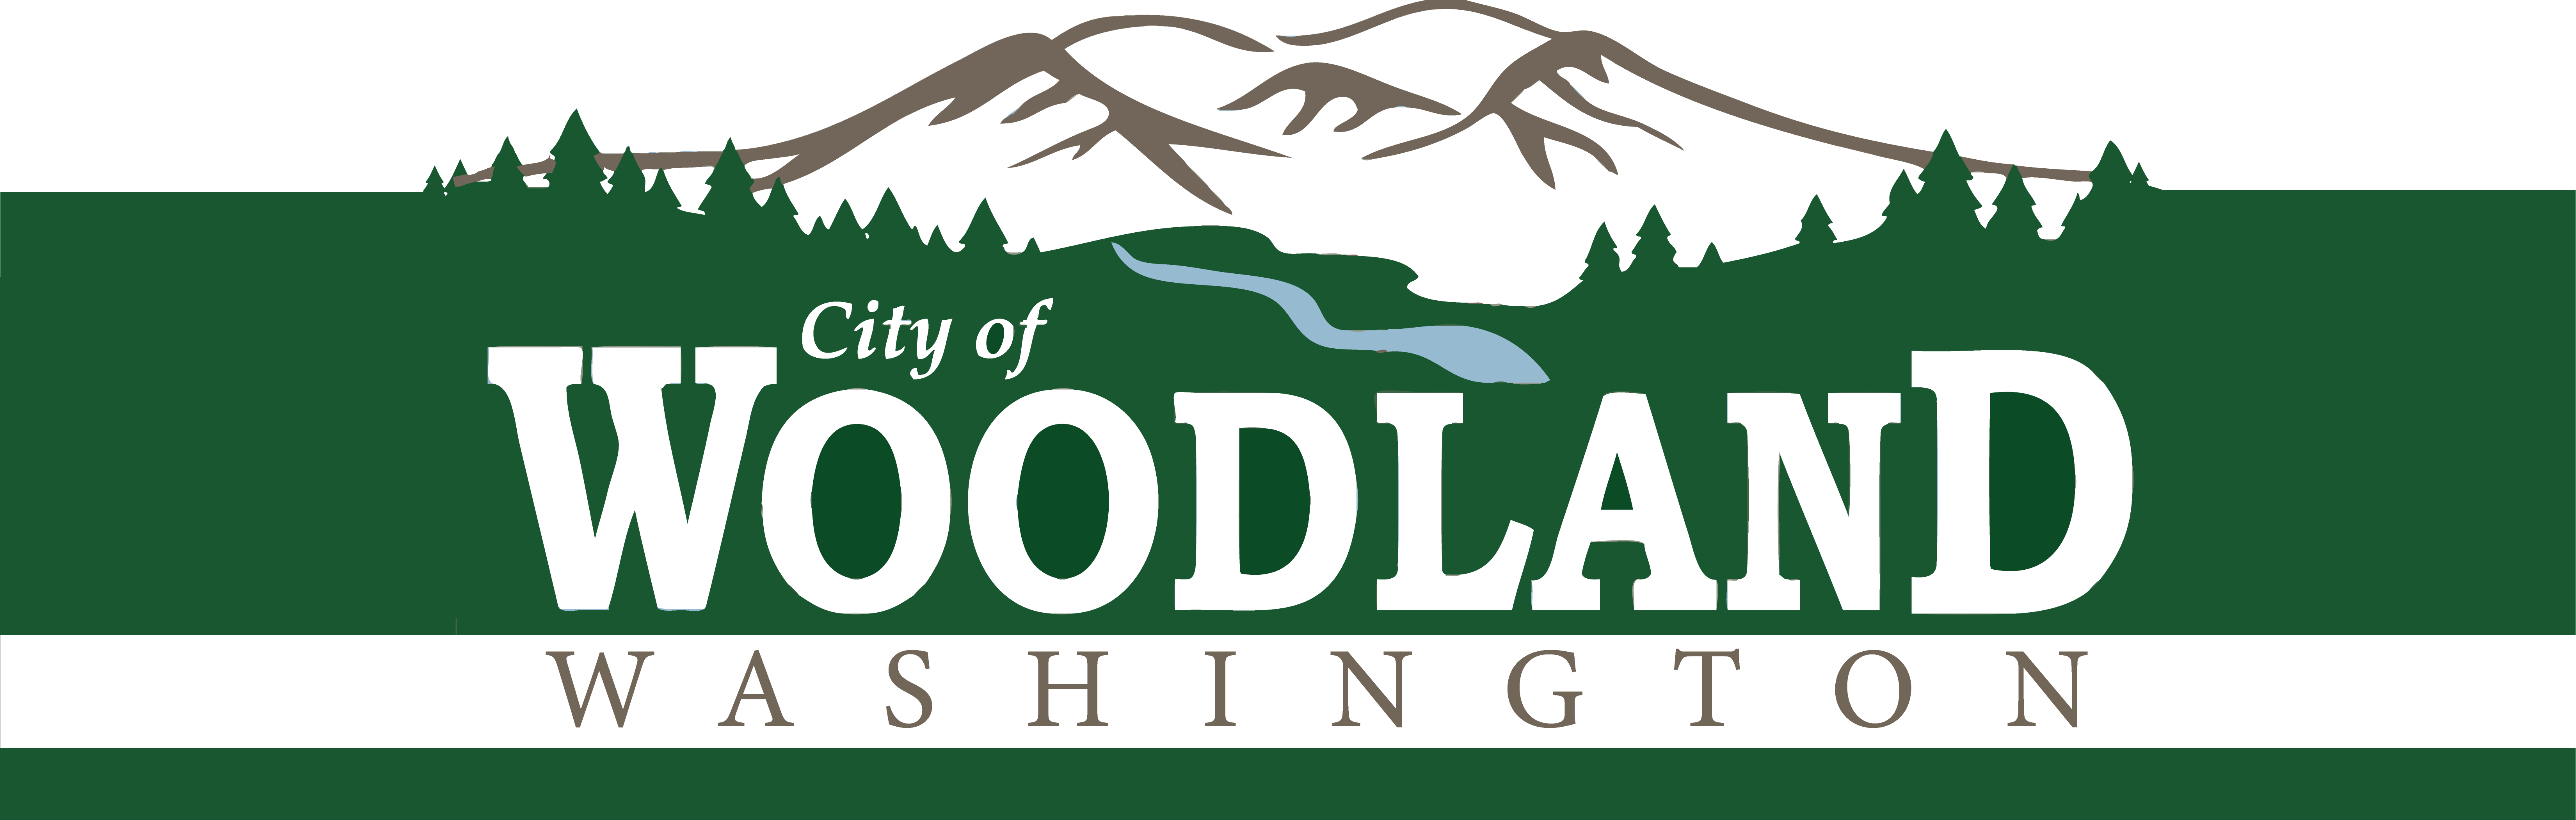 city of woodland logo